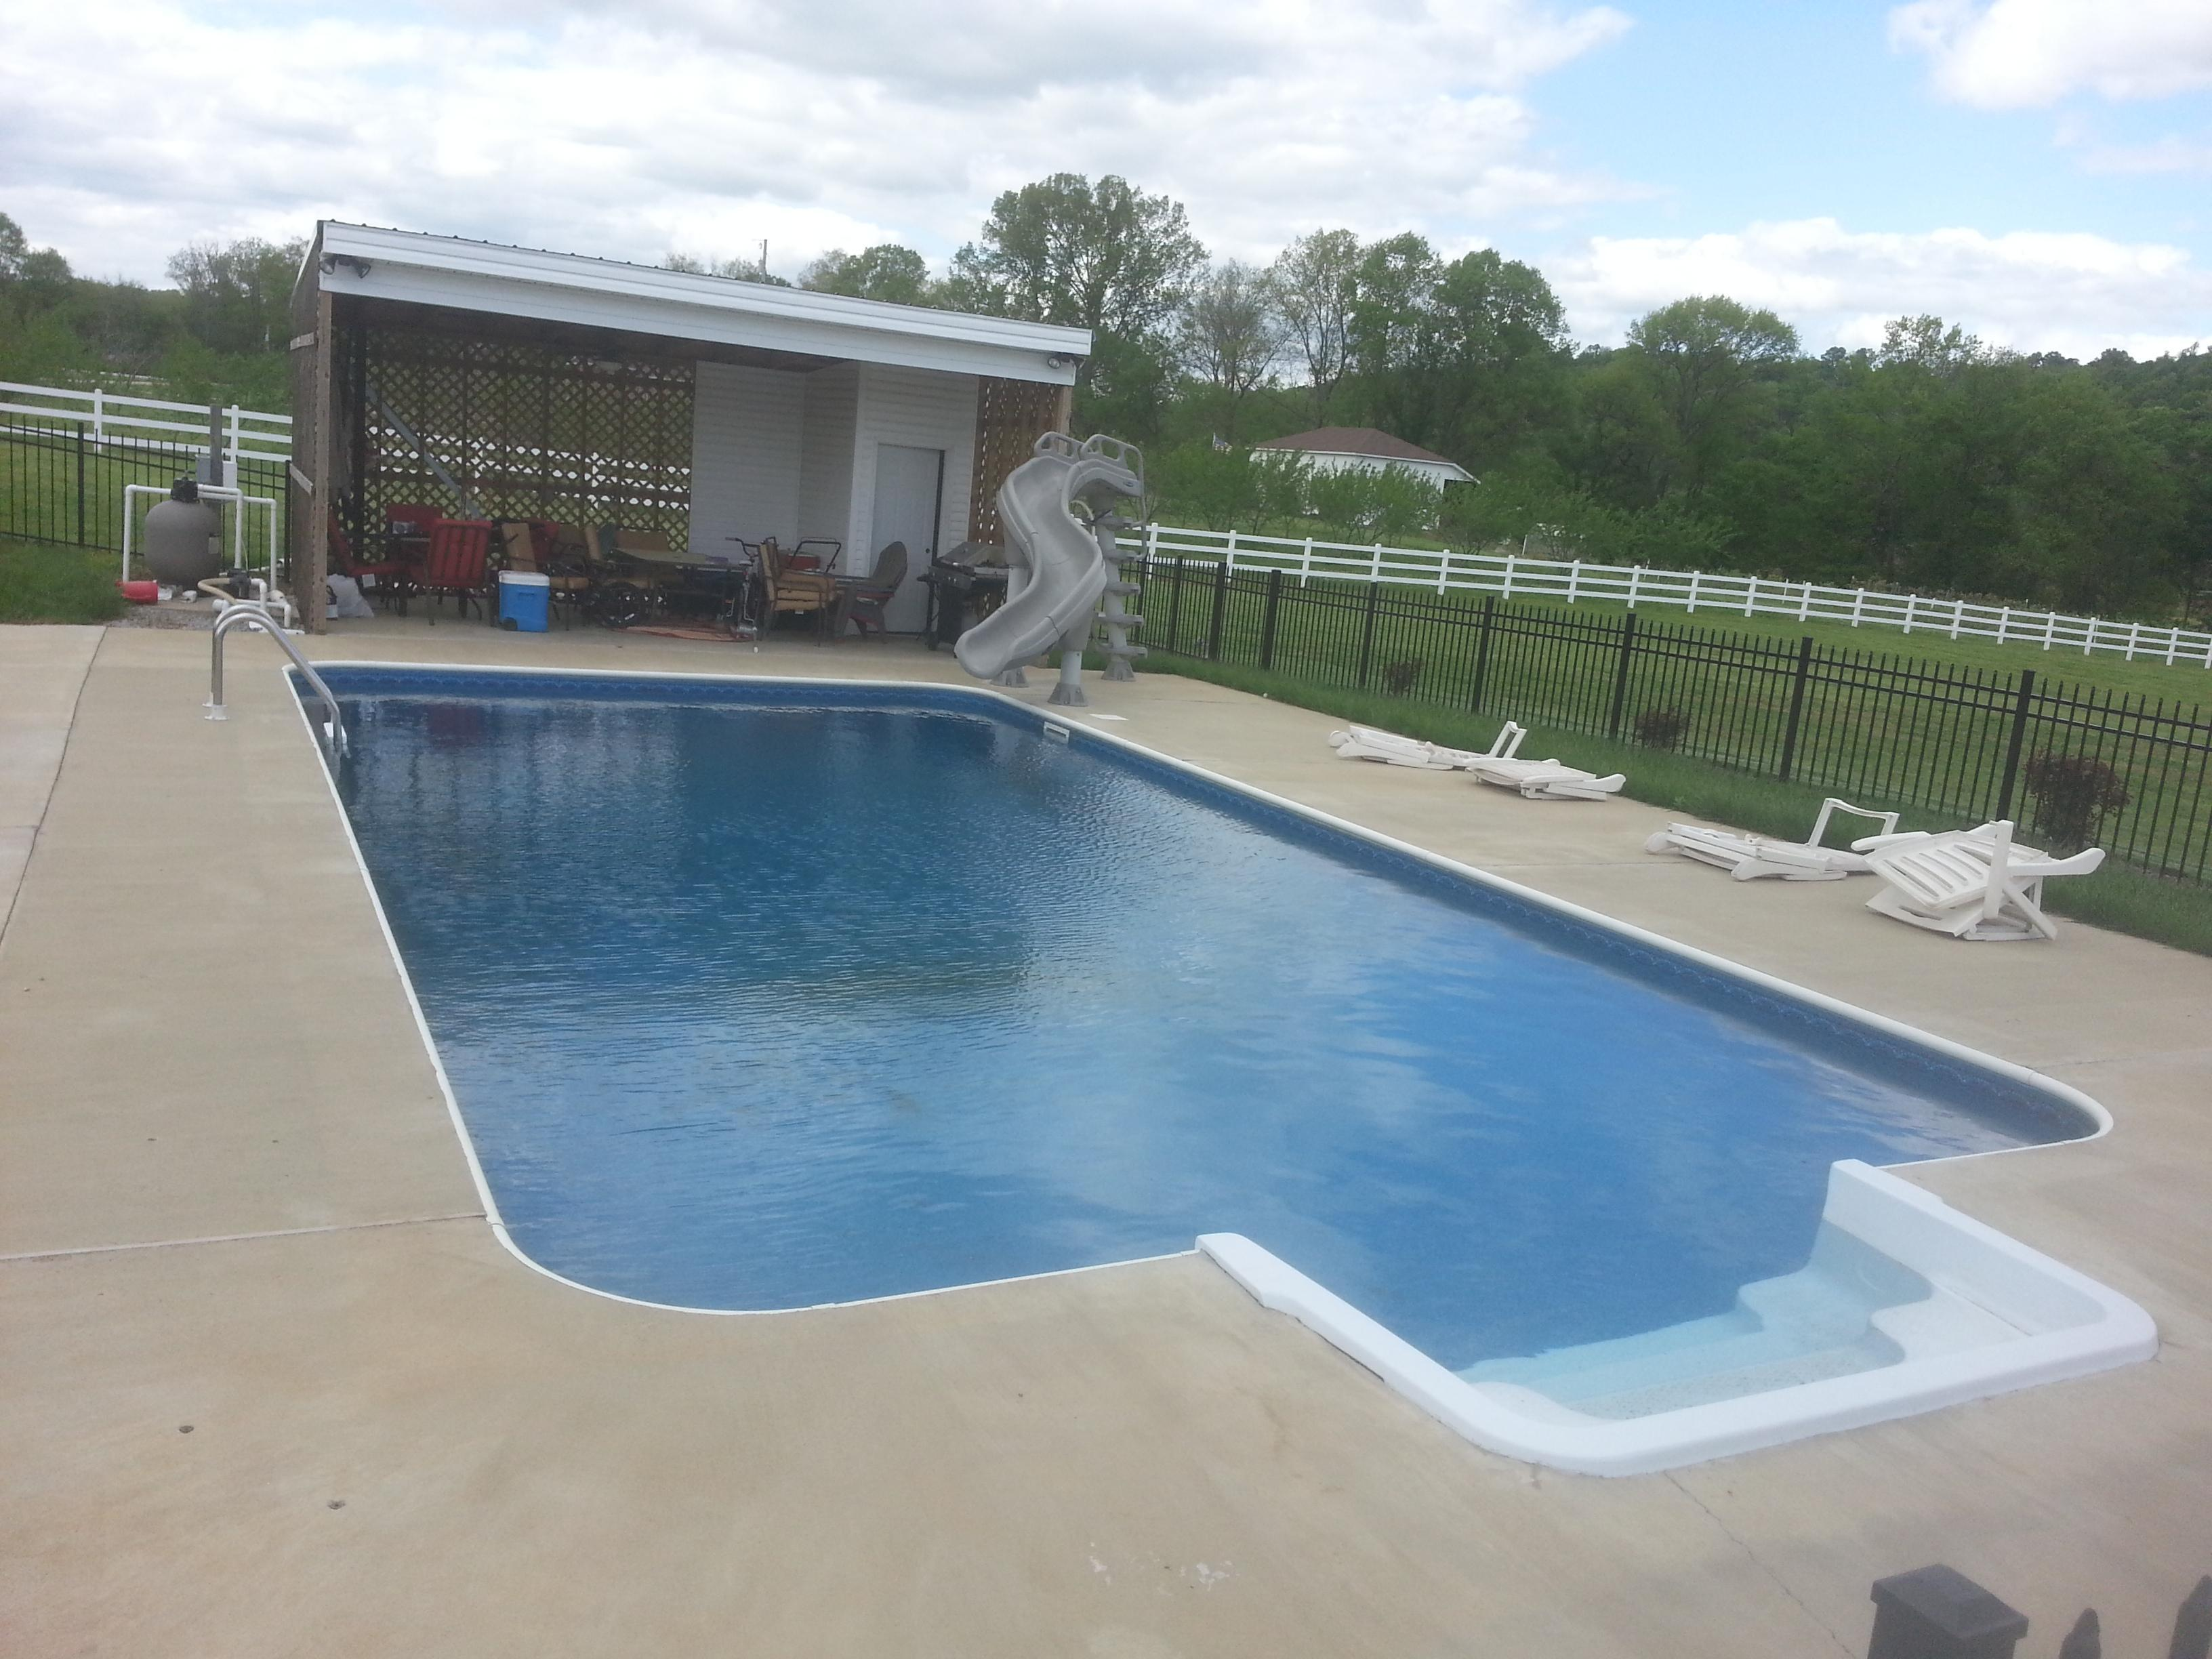 Diamond pools and spas in lawrenceburg tn swimming pool for Swimming pool dealers